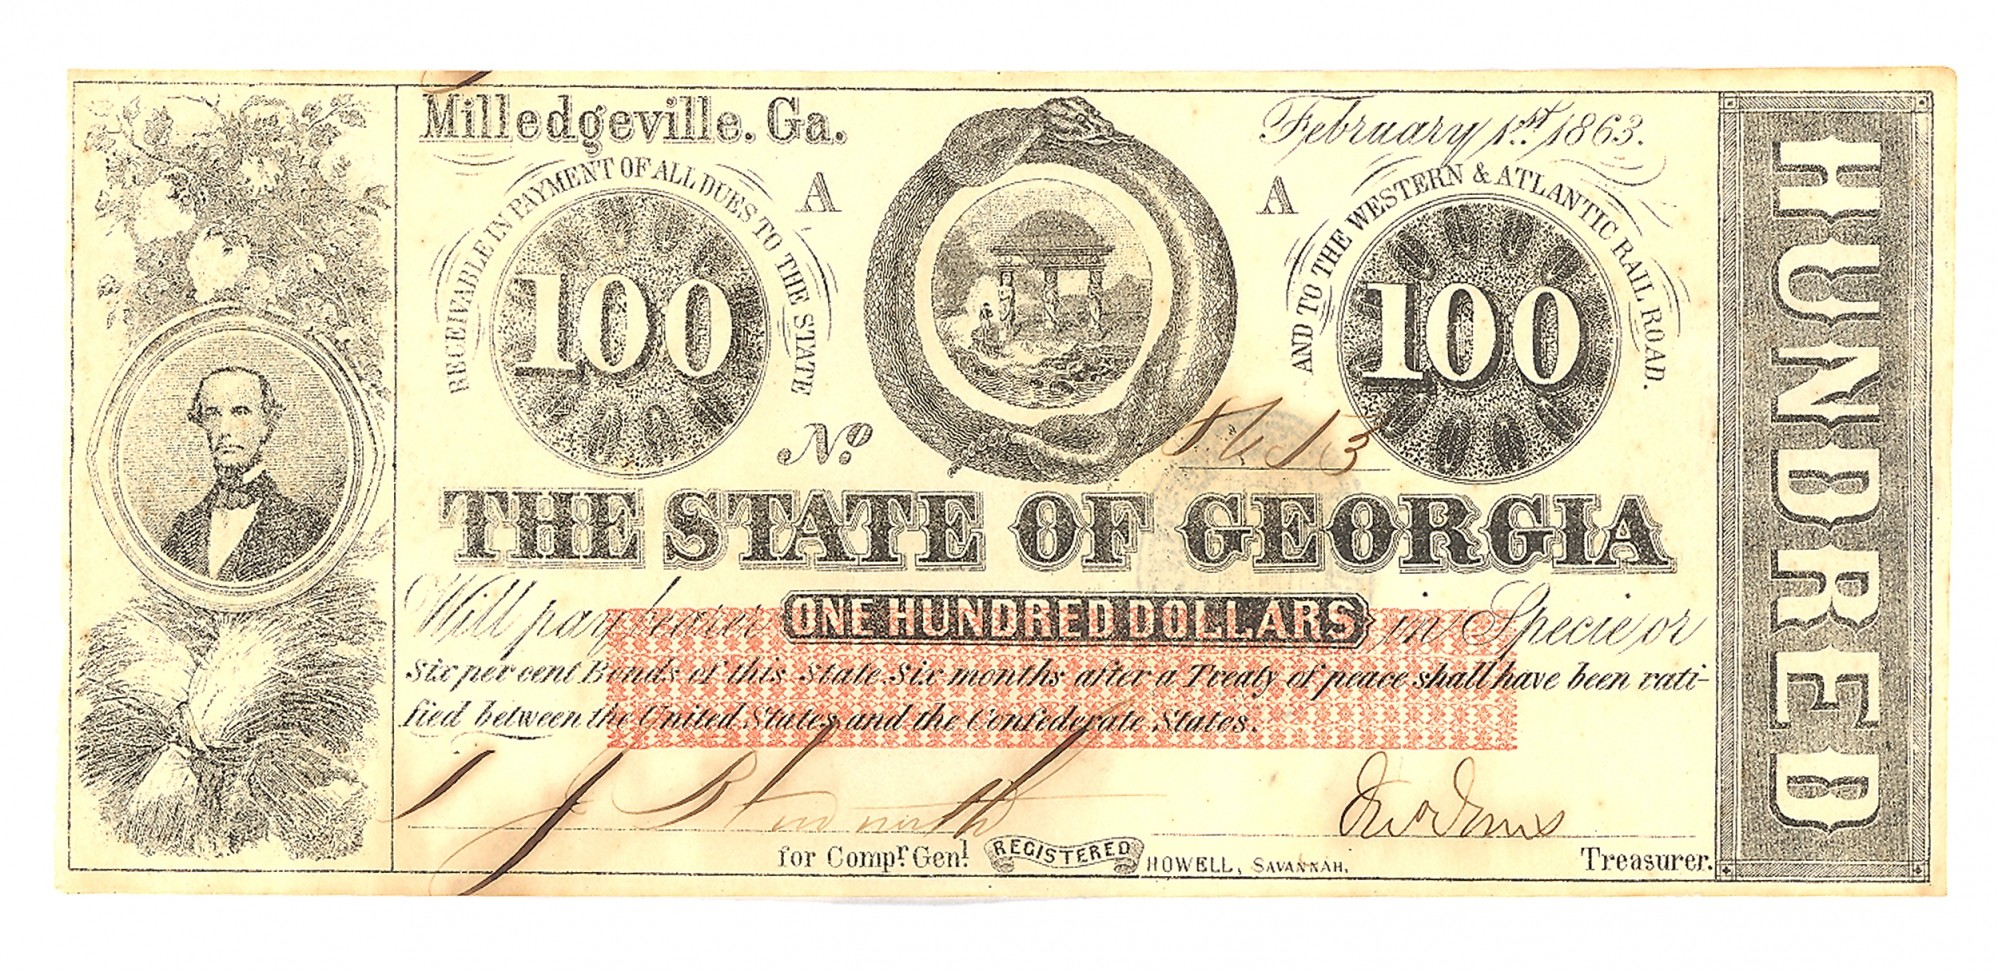 THE STATE OF GEORGIA $100 NOTE